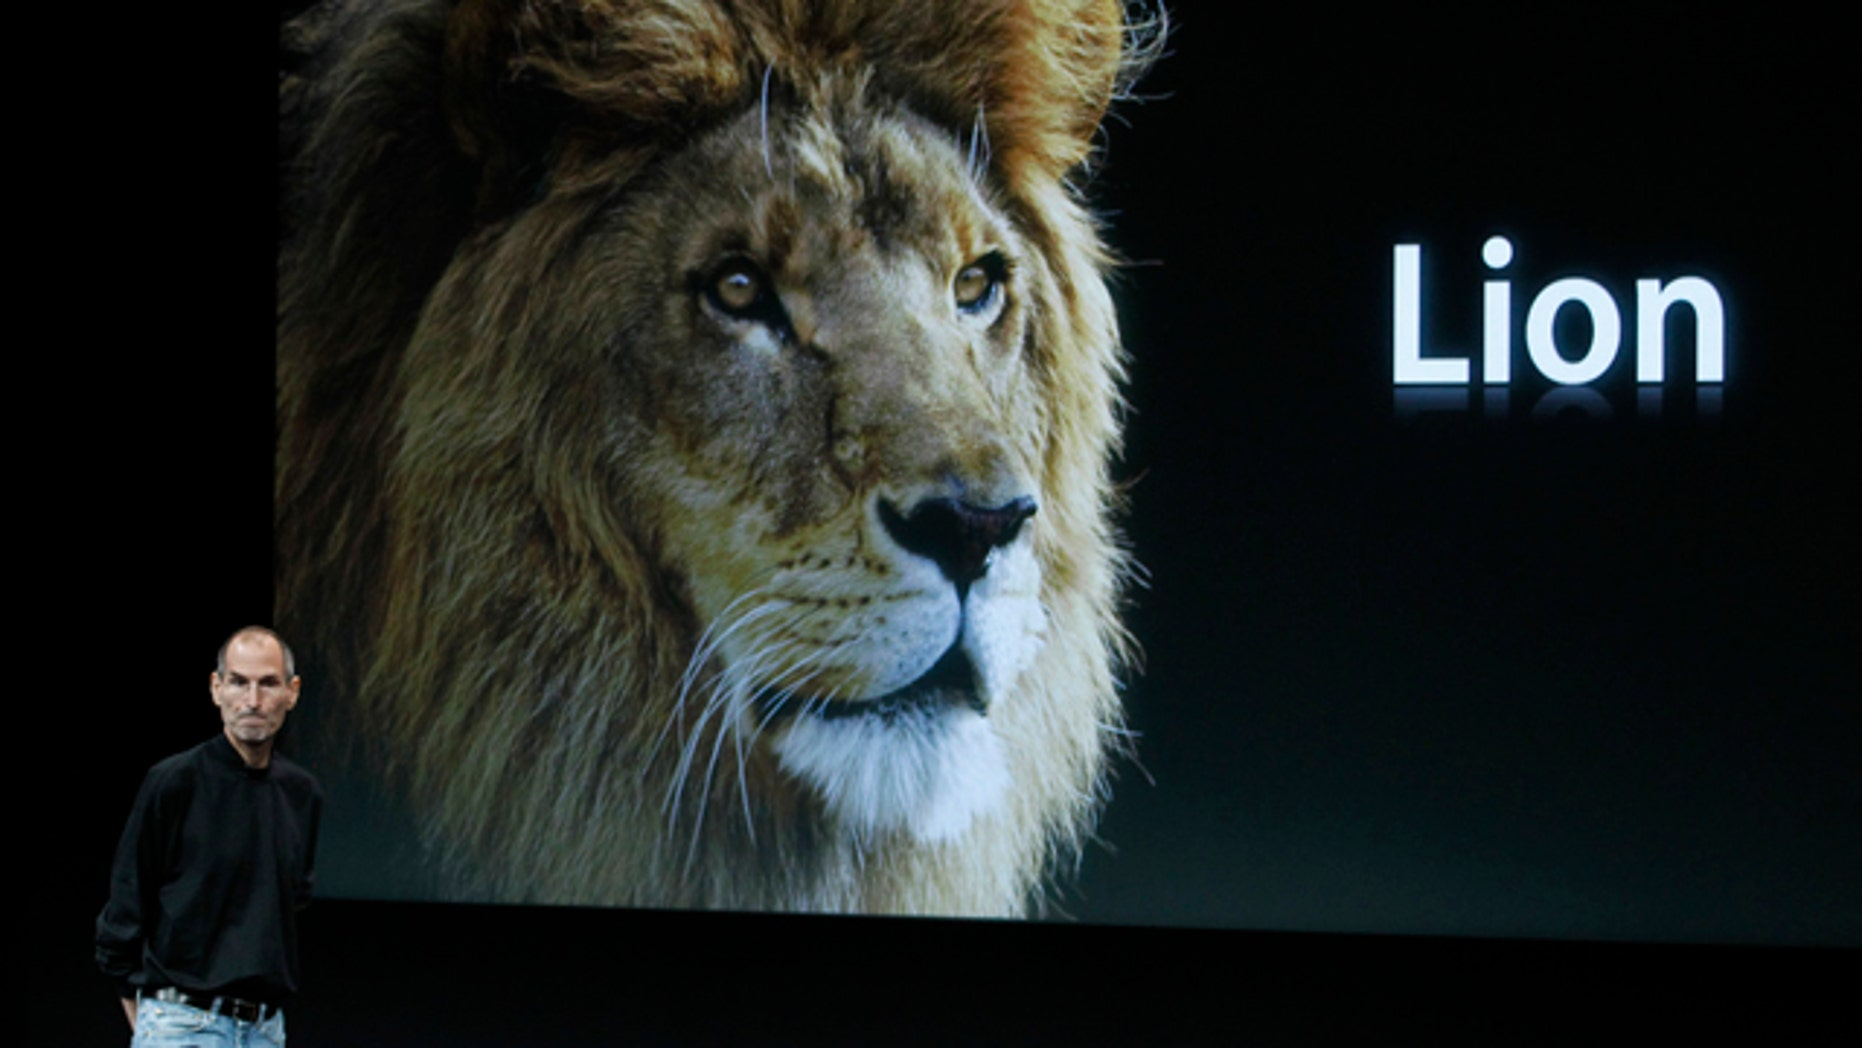 Apple CEO Steve Jobs talks about the new Apple Mac X Lion at Apple headquarters in Cupertino, Calif., Wednesday, Oct. 20, 2010. (AP Photo/Tony Avelar)